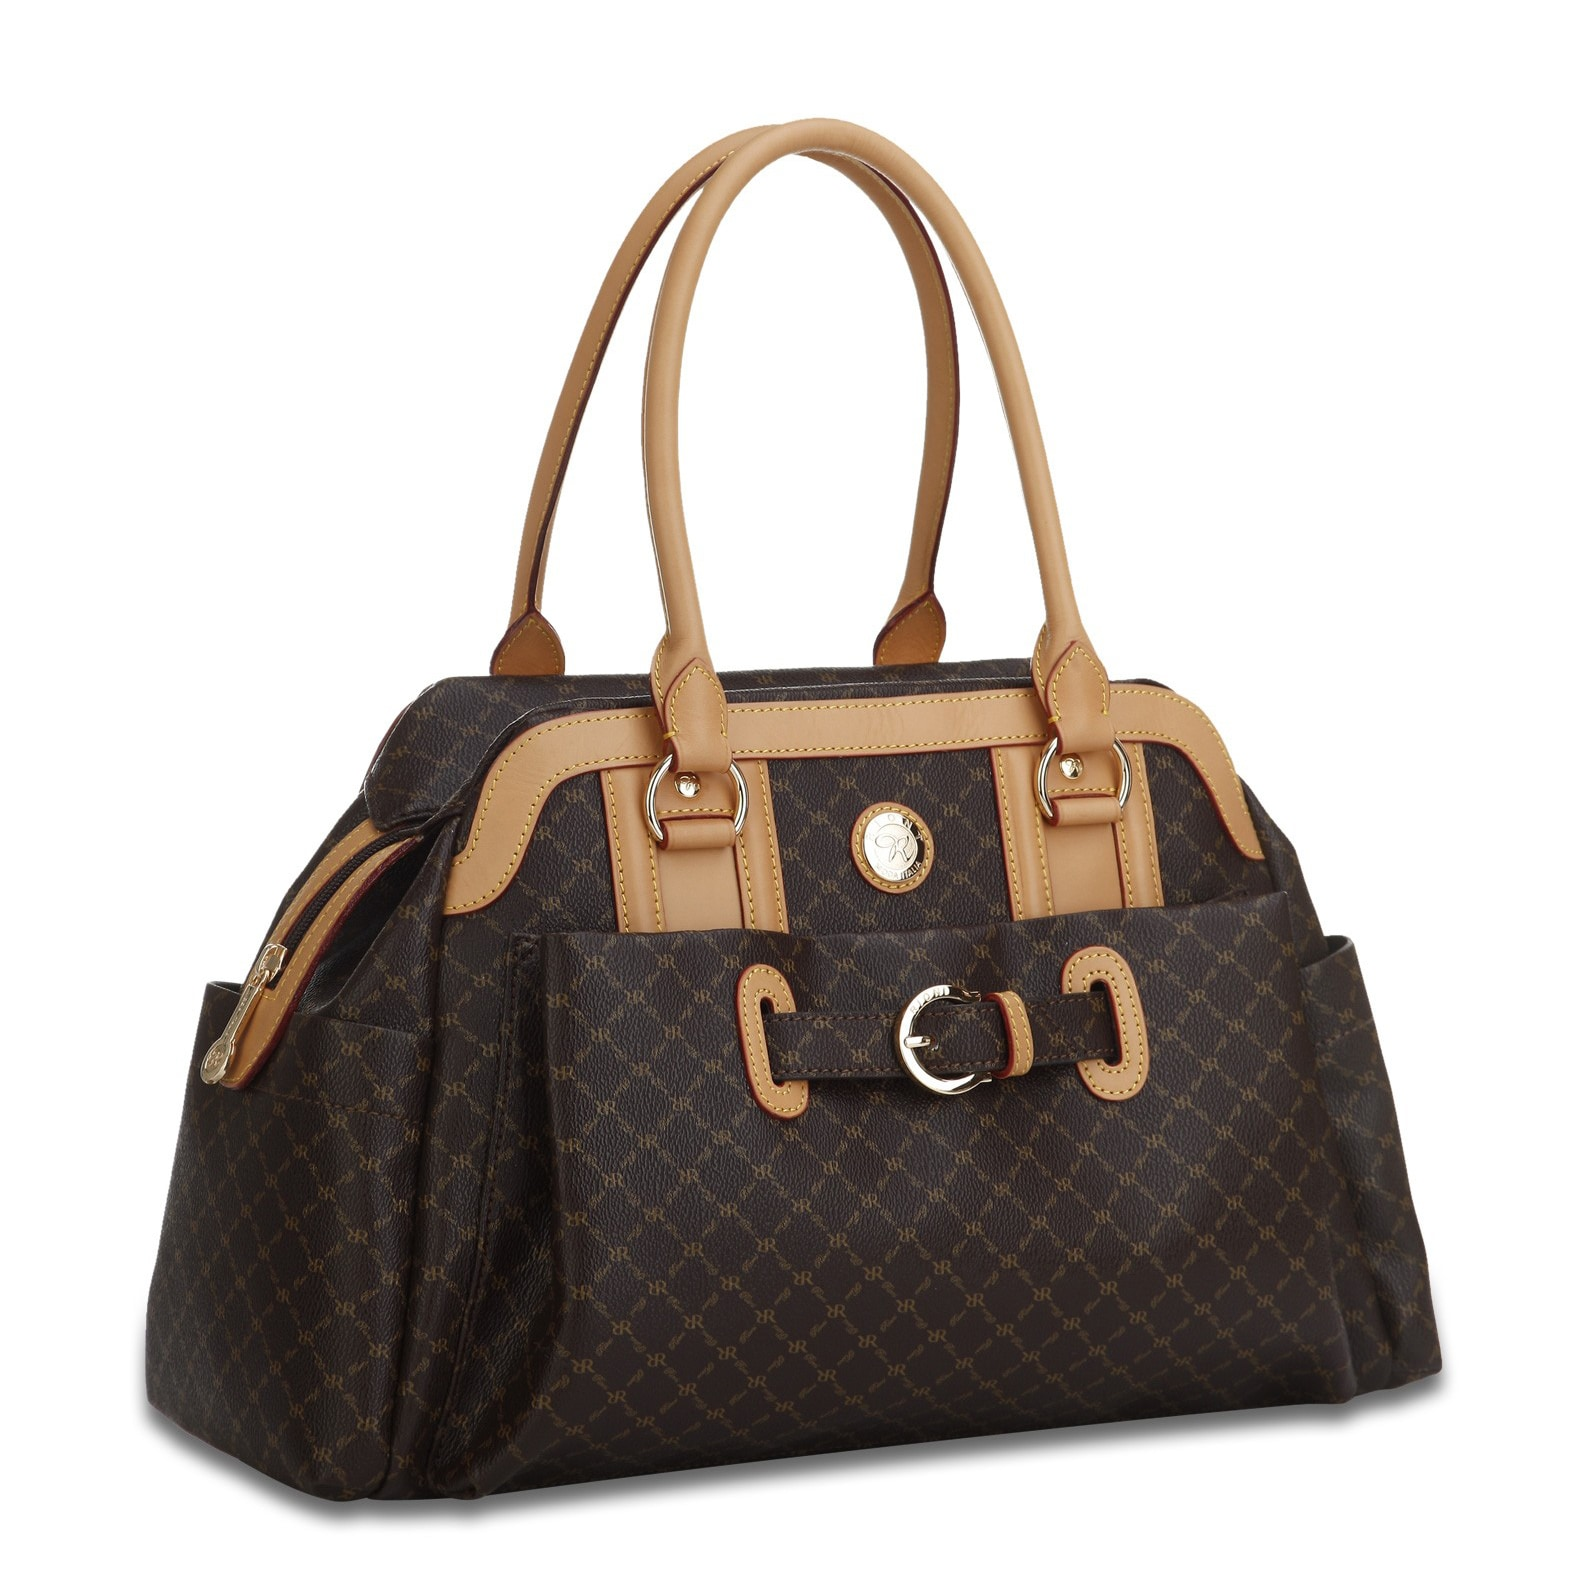 Rioni Brown Signature Leather Handbag (Brown), Women's